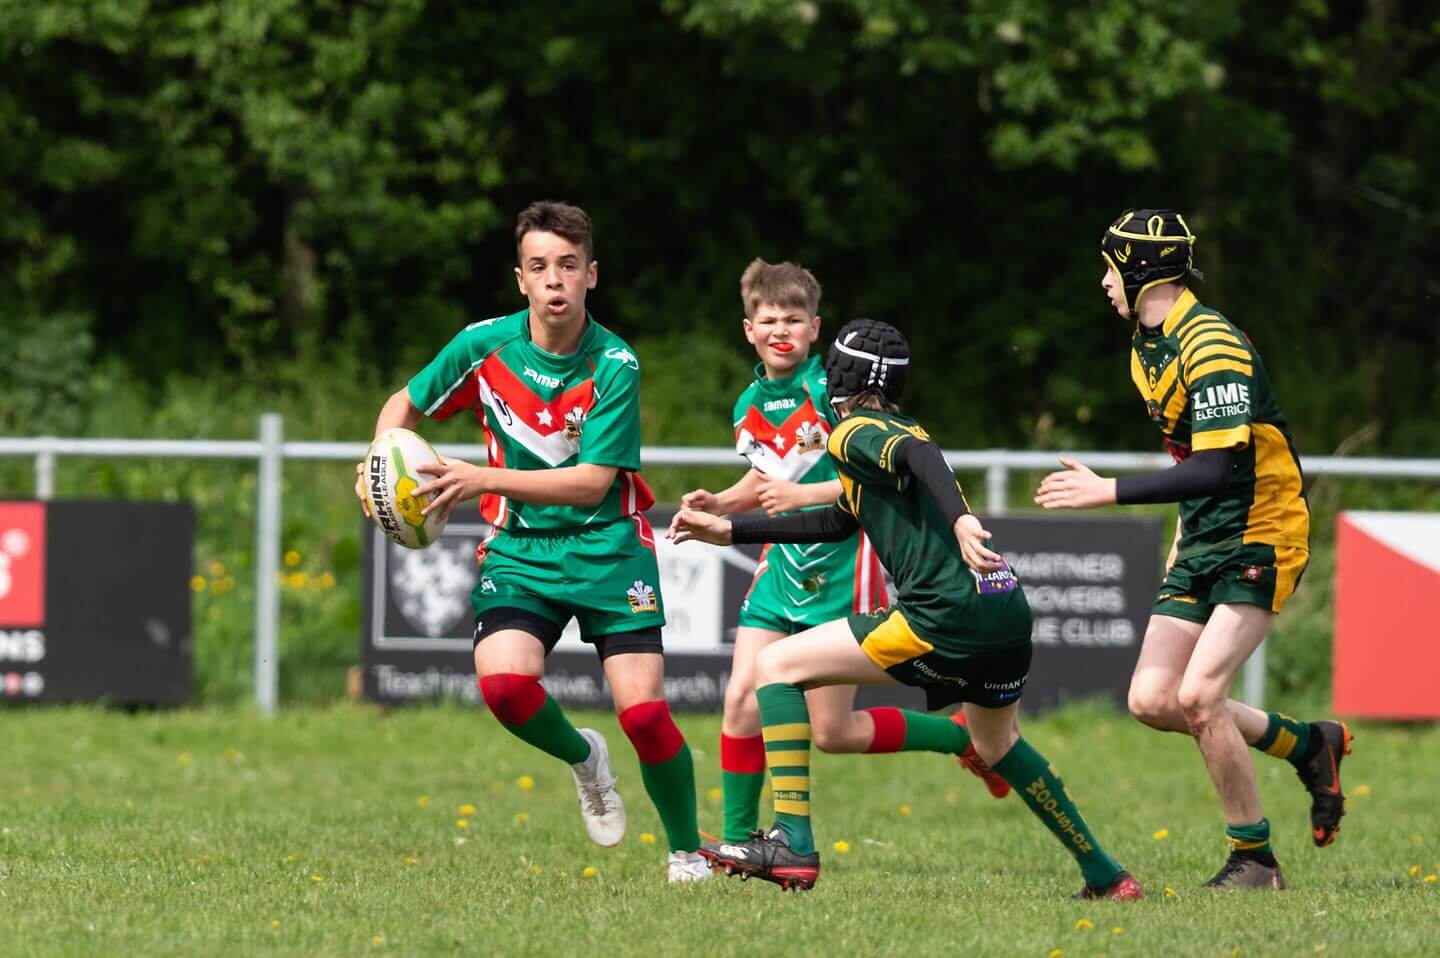 Report: Woolston Rovers U13s 14-54 North Wales Crusaders U13s